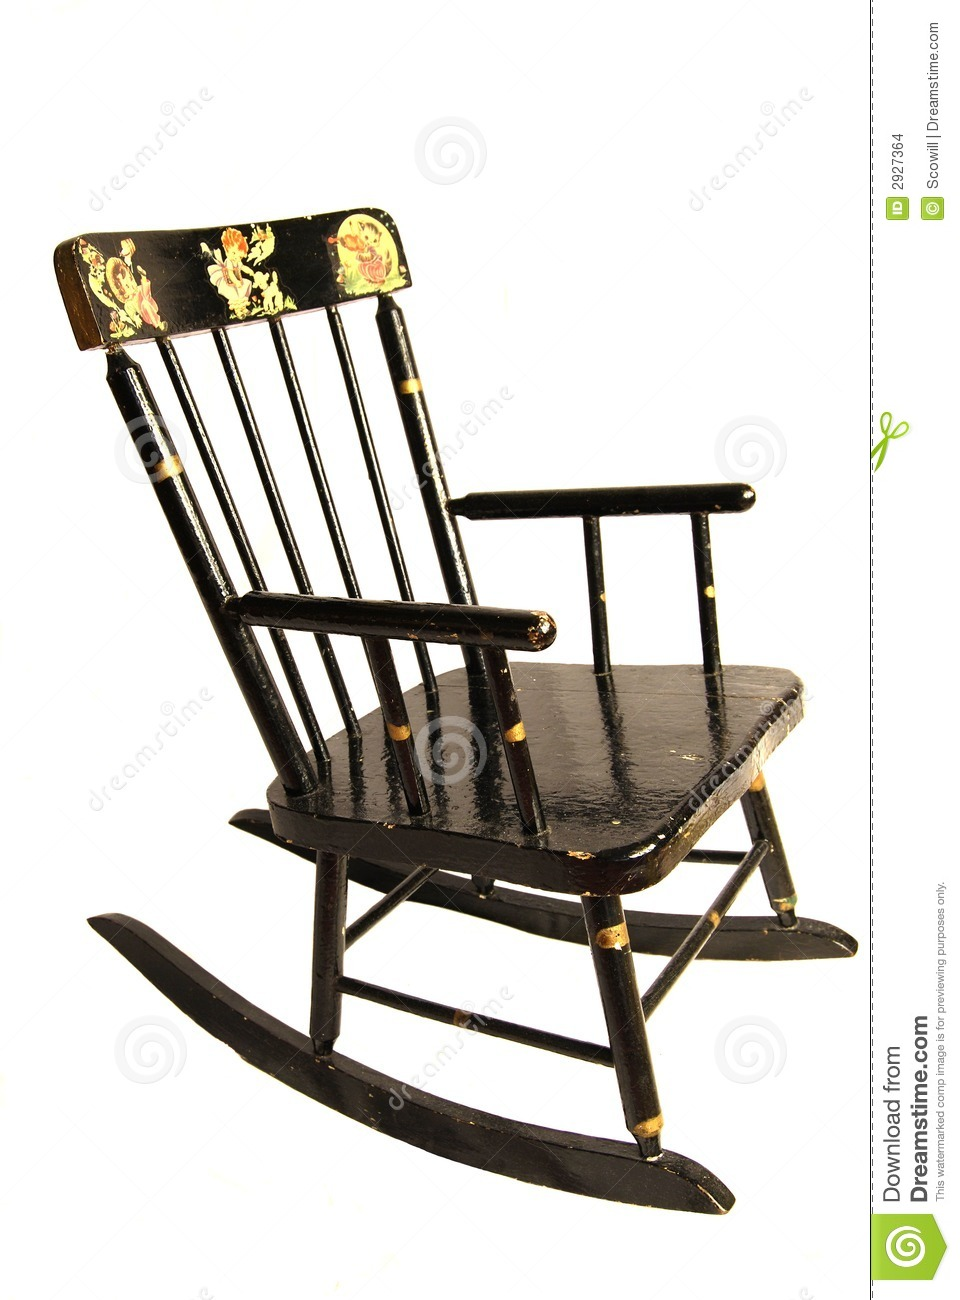 free clipart rocking chair pictures  Clipground